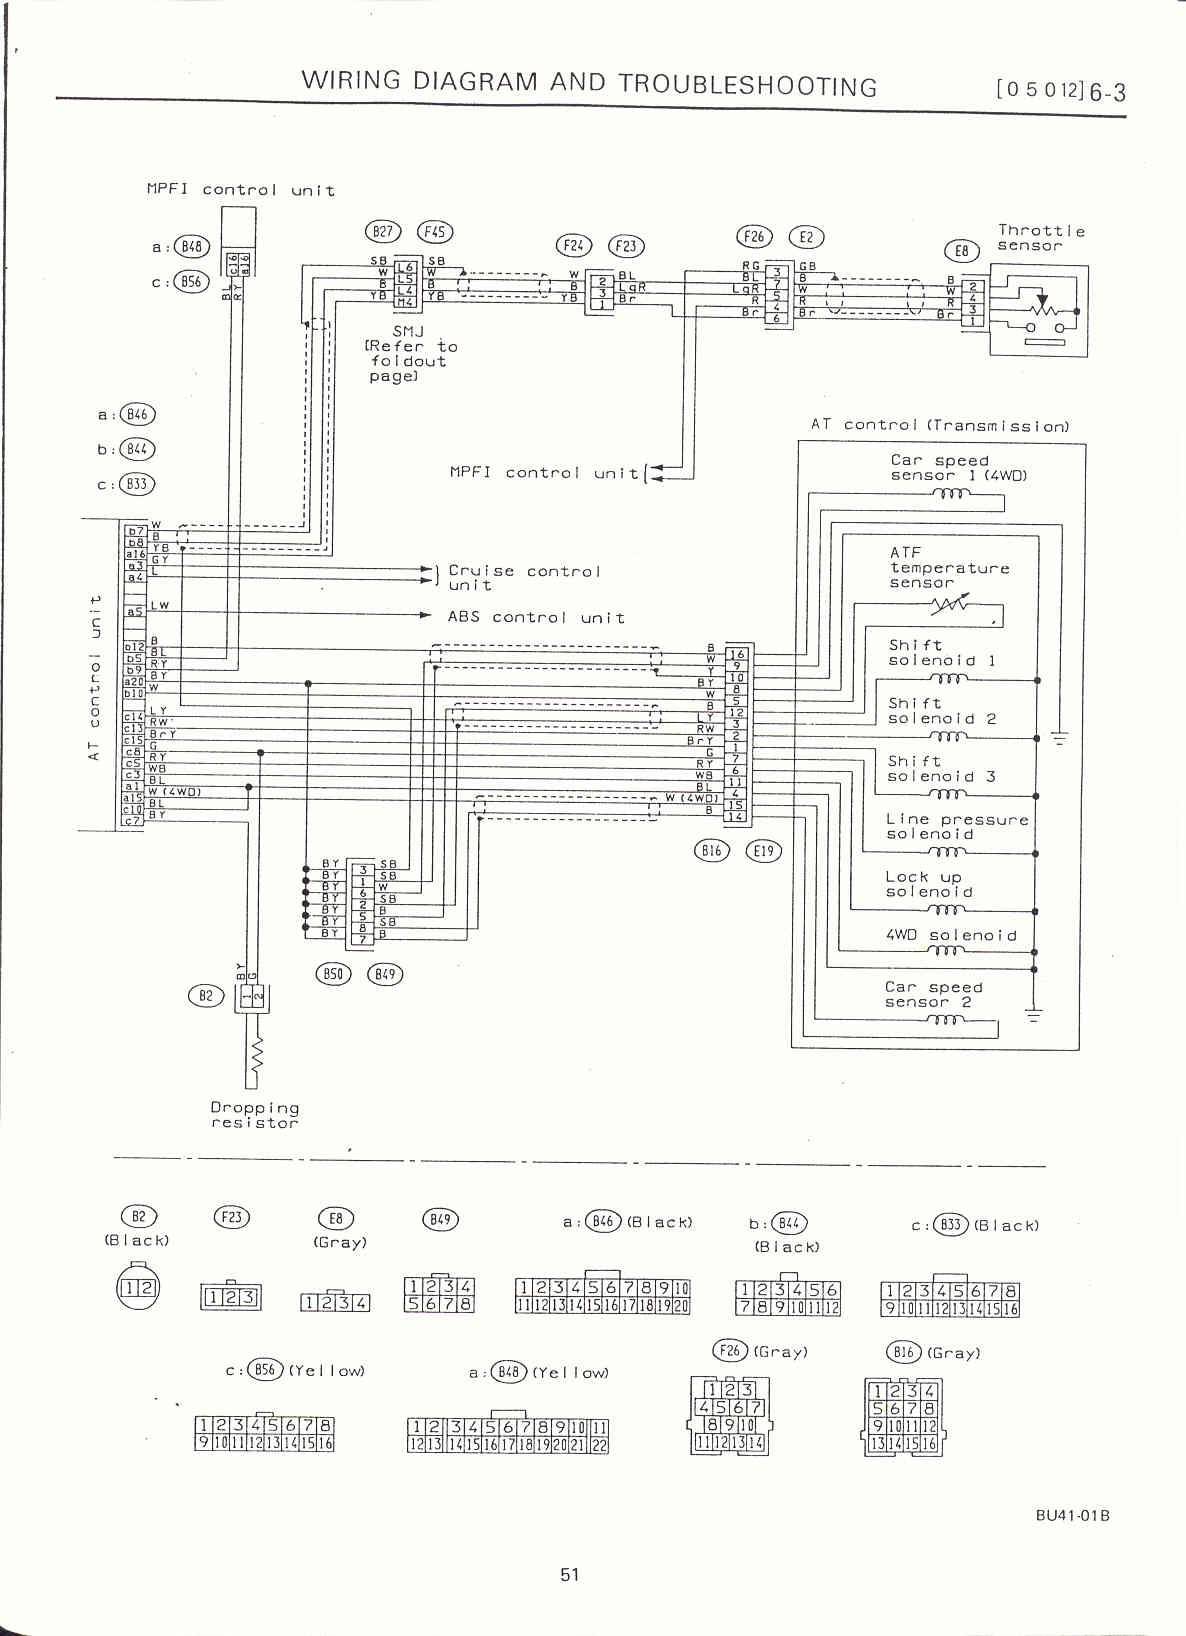 Subaru 2 5xt Engine Diagram Circuit Diagram Symbols \u2022 Wire Diagram  2002 Subaru Transs 2005 Subaru Forester Xt Wiring Diagram